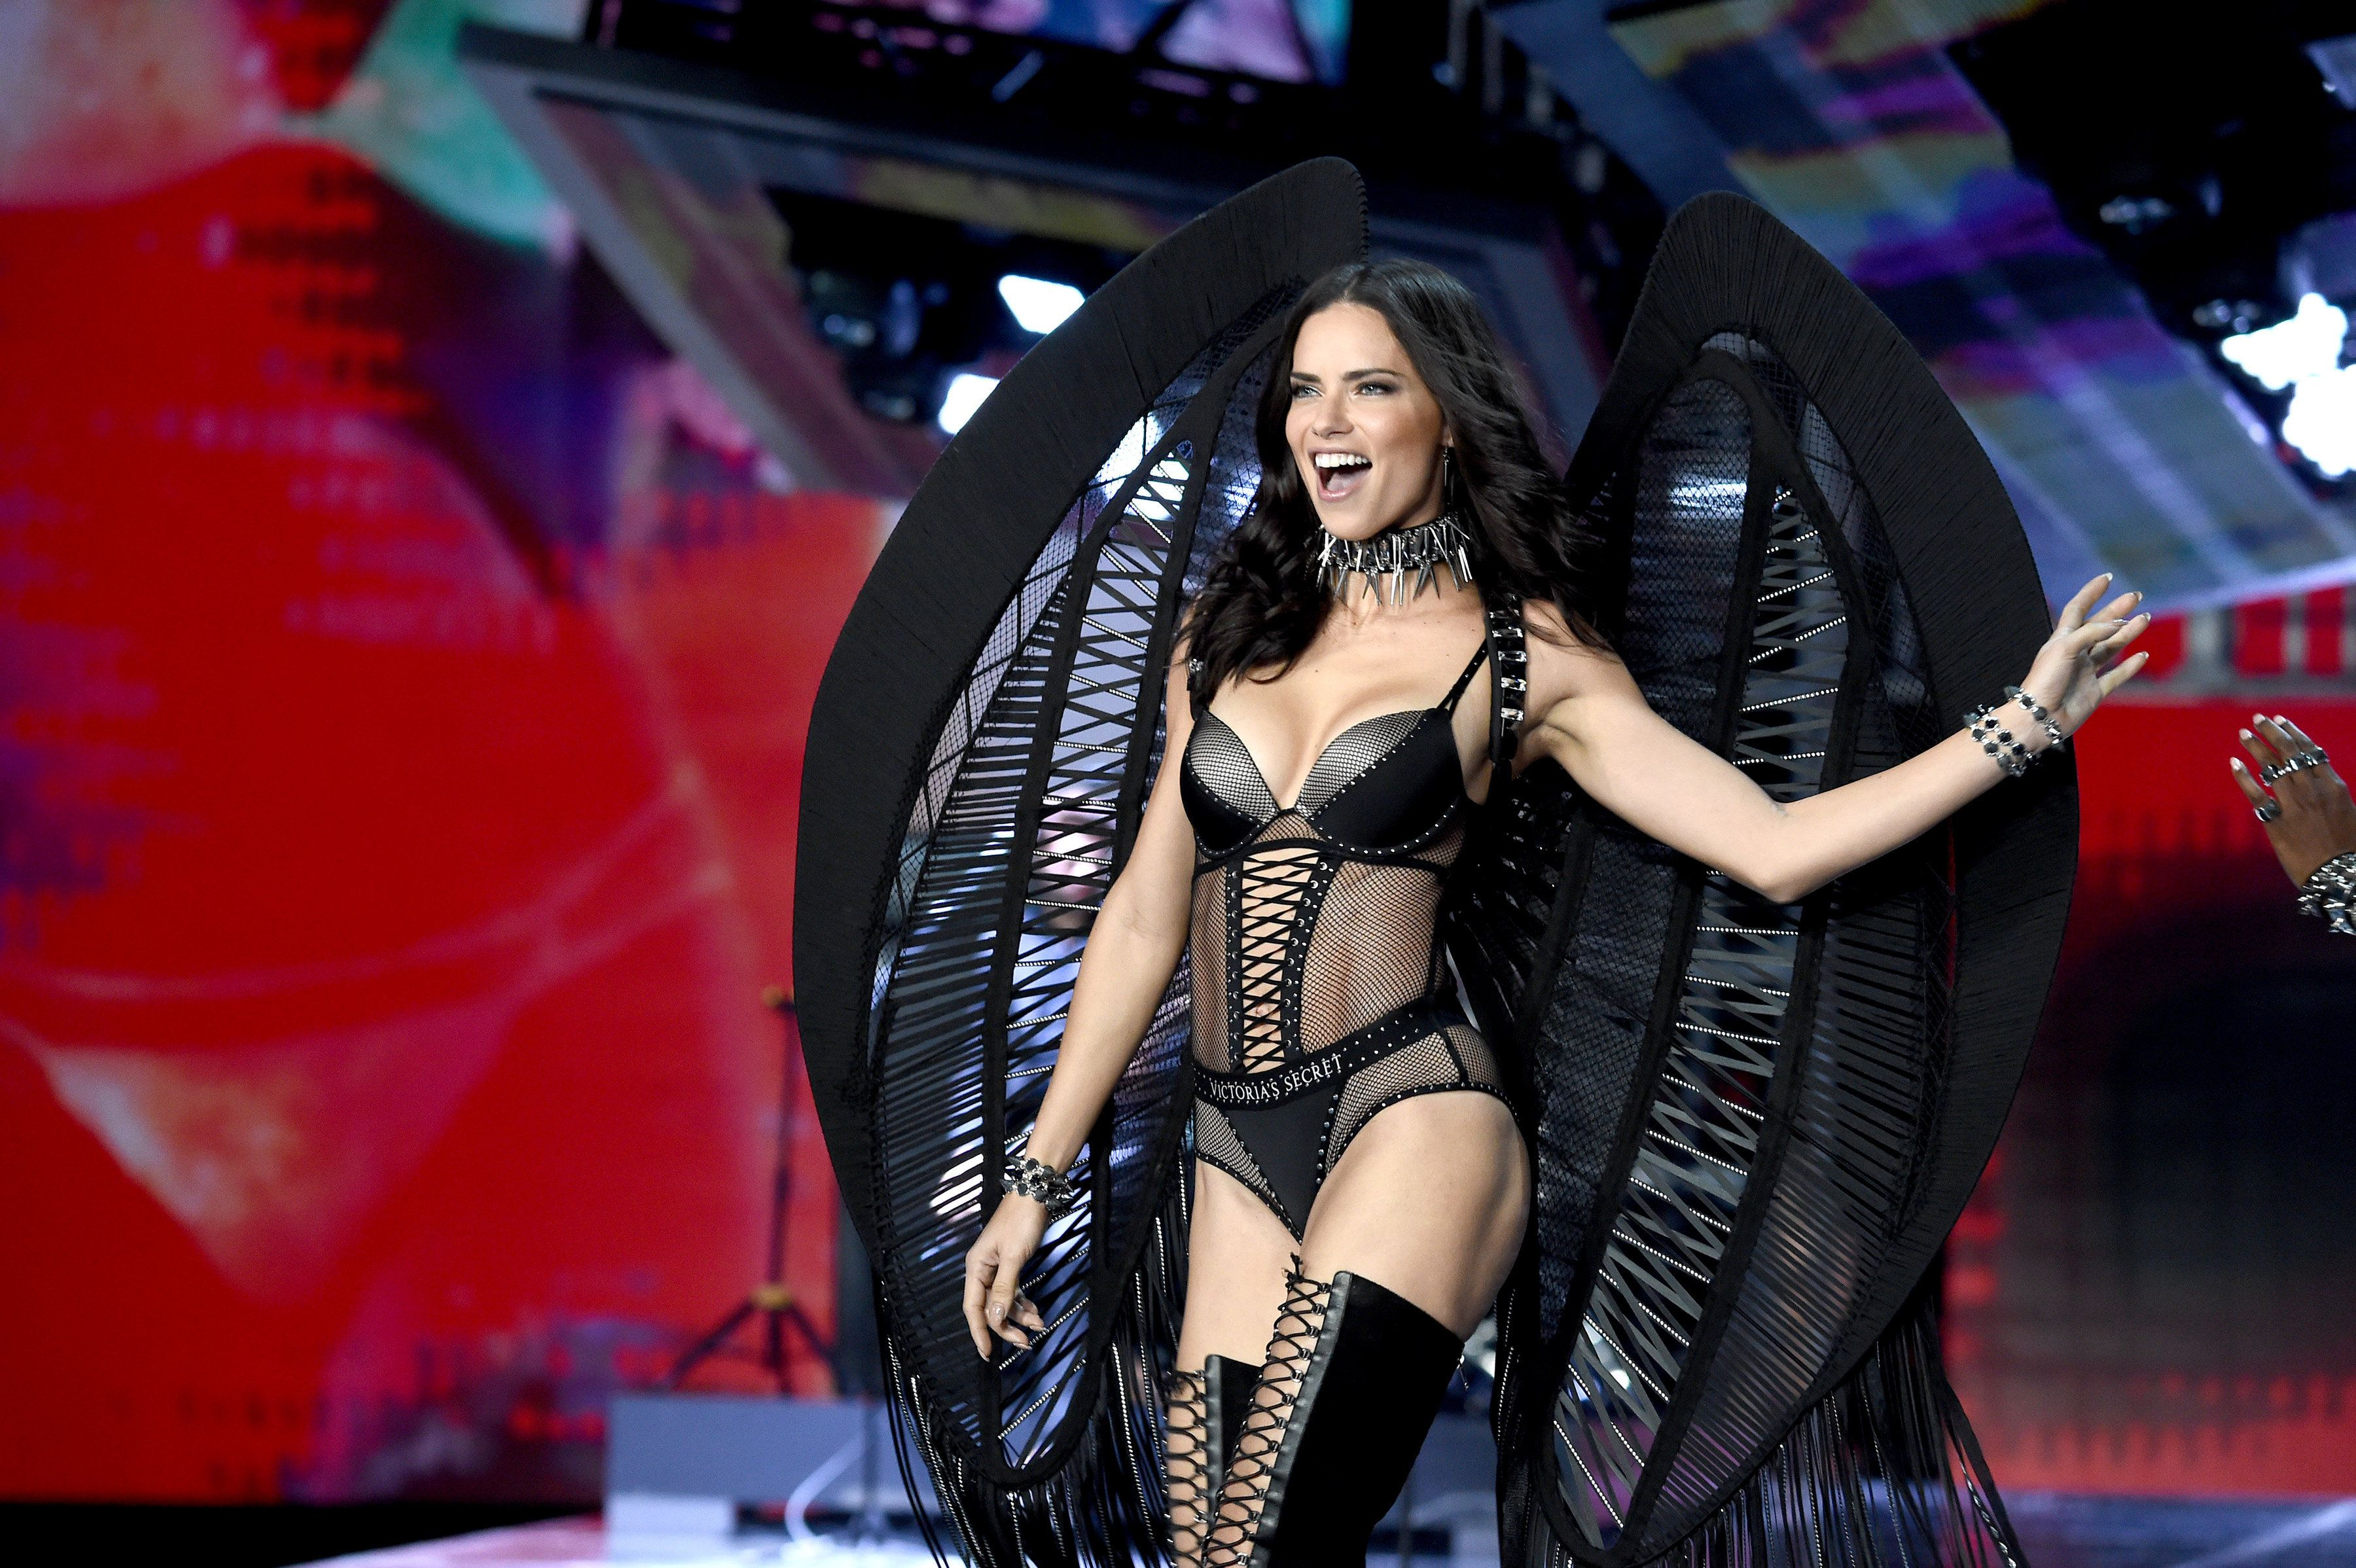 SHANGHAI, CHINA - NOVEMBER 20:  Adriana Lima walks the runway during the 2017 Victoria's Secret Fashion Show In Shanghai at Mercedes-Benz Arena on November 20, 2017 in Shanghai, China.  (Photo by Theo Wargo/Getty Images for Victoria's Secret)